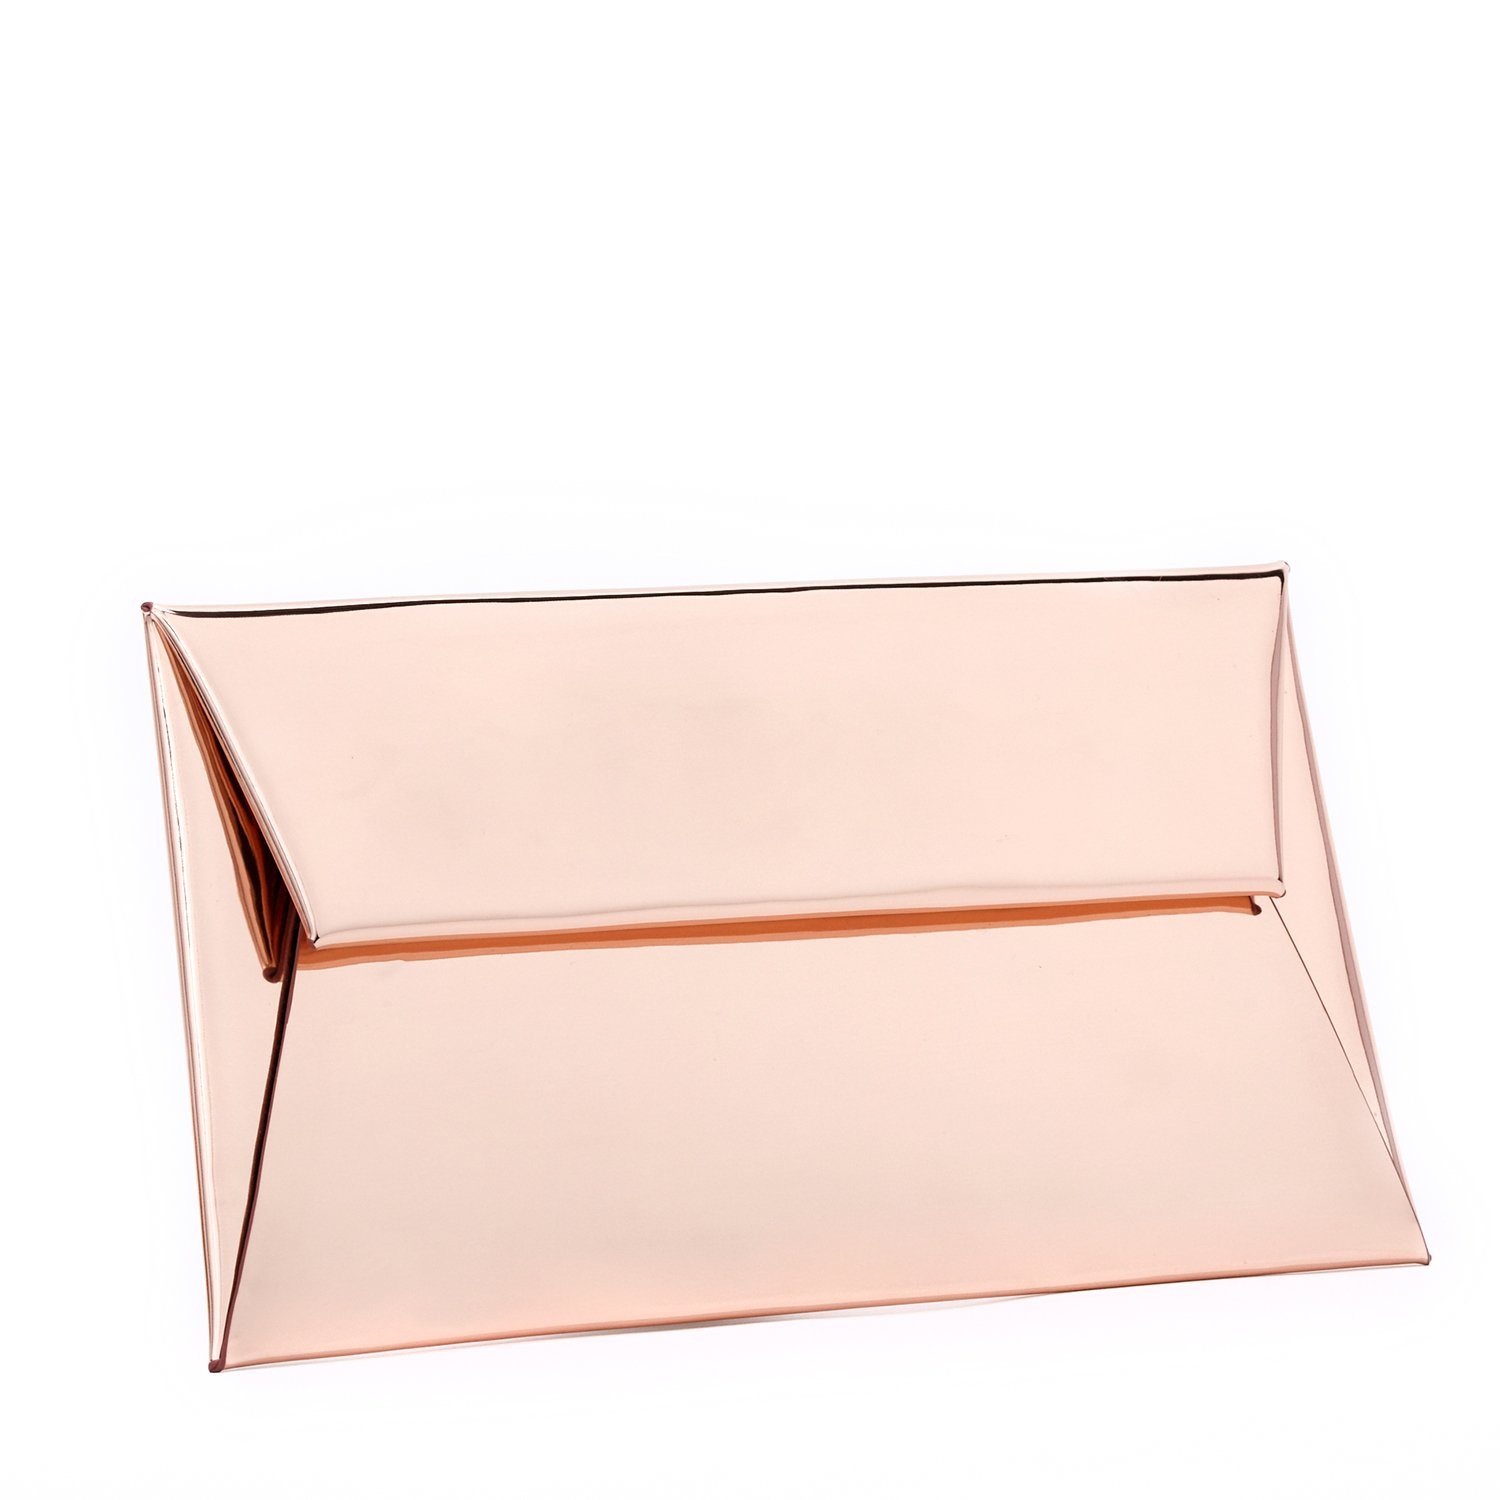 BYSUMMER MARKFRAN Metallic Reflective Envelope Clutch Purses For Women Evening Wedding Handbags